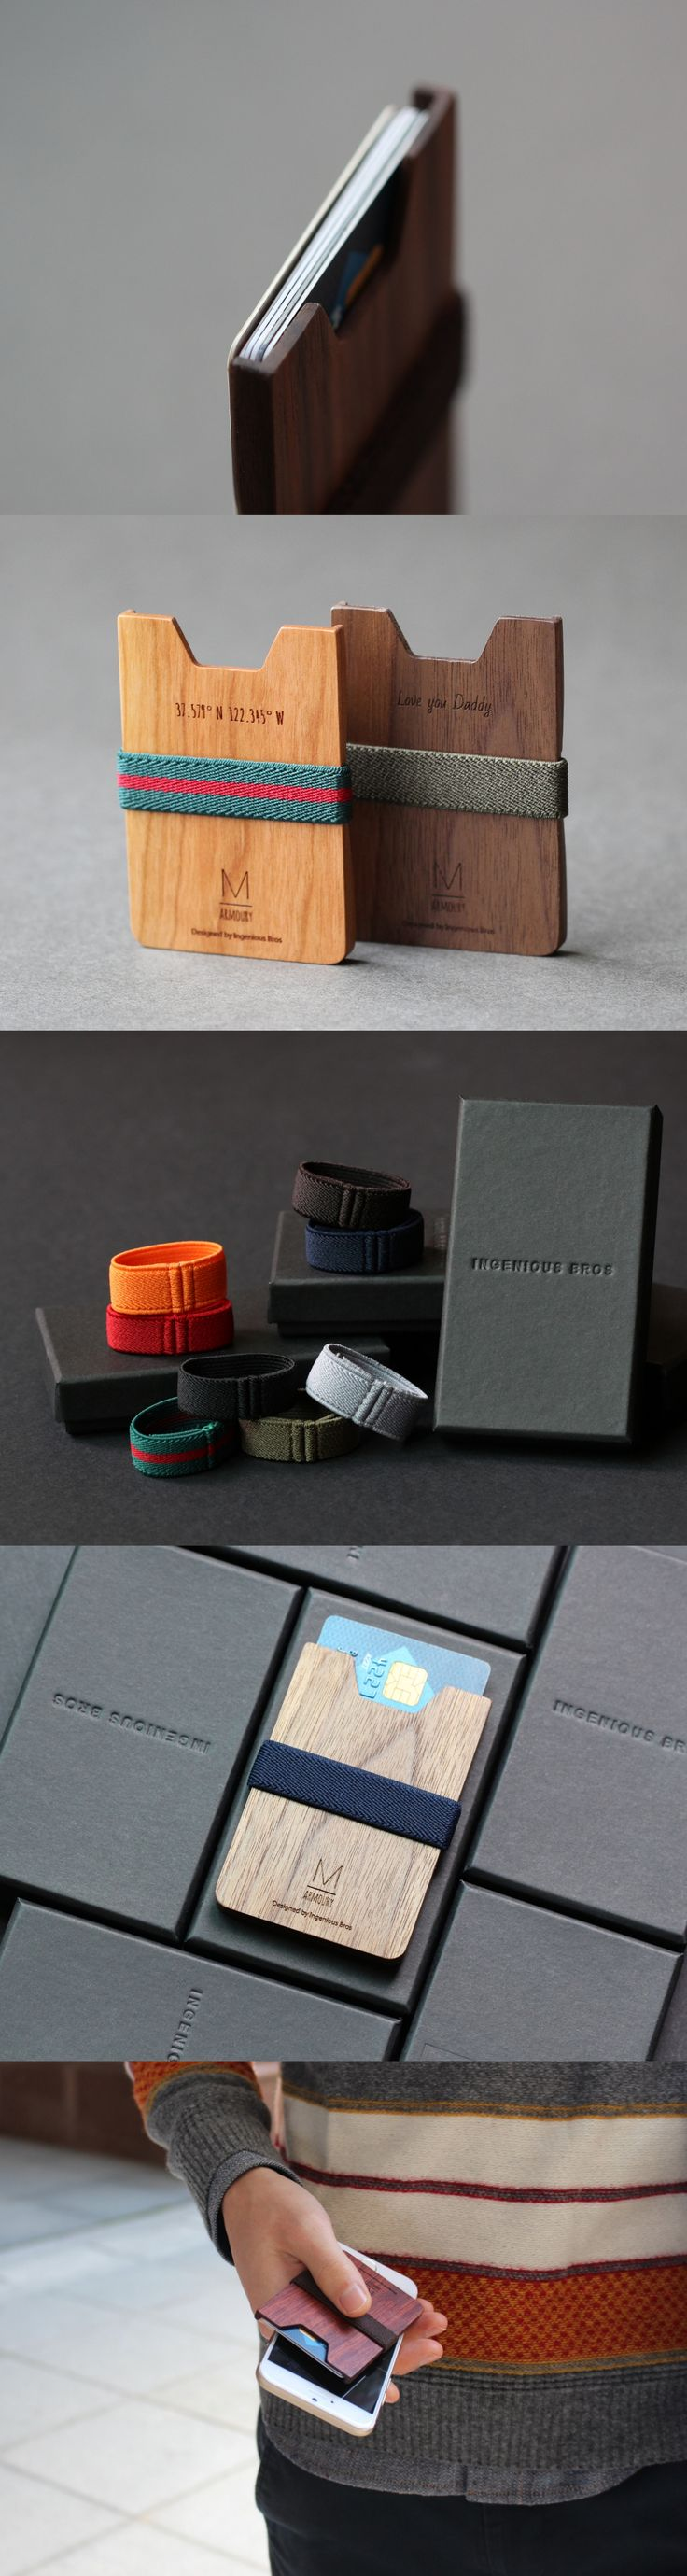 Simple wooden card wallet designed by IngeniousBros